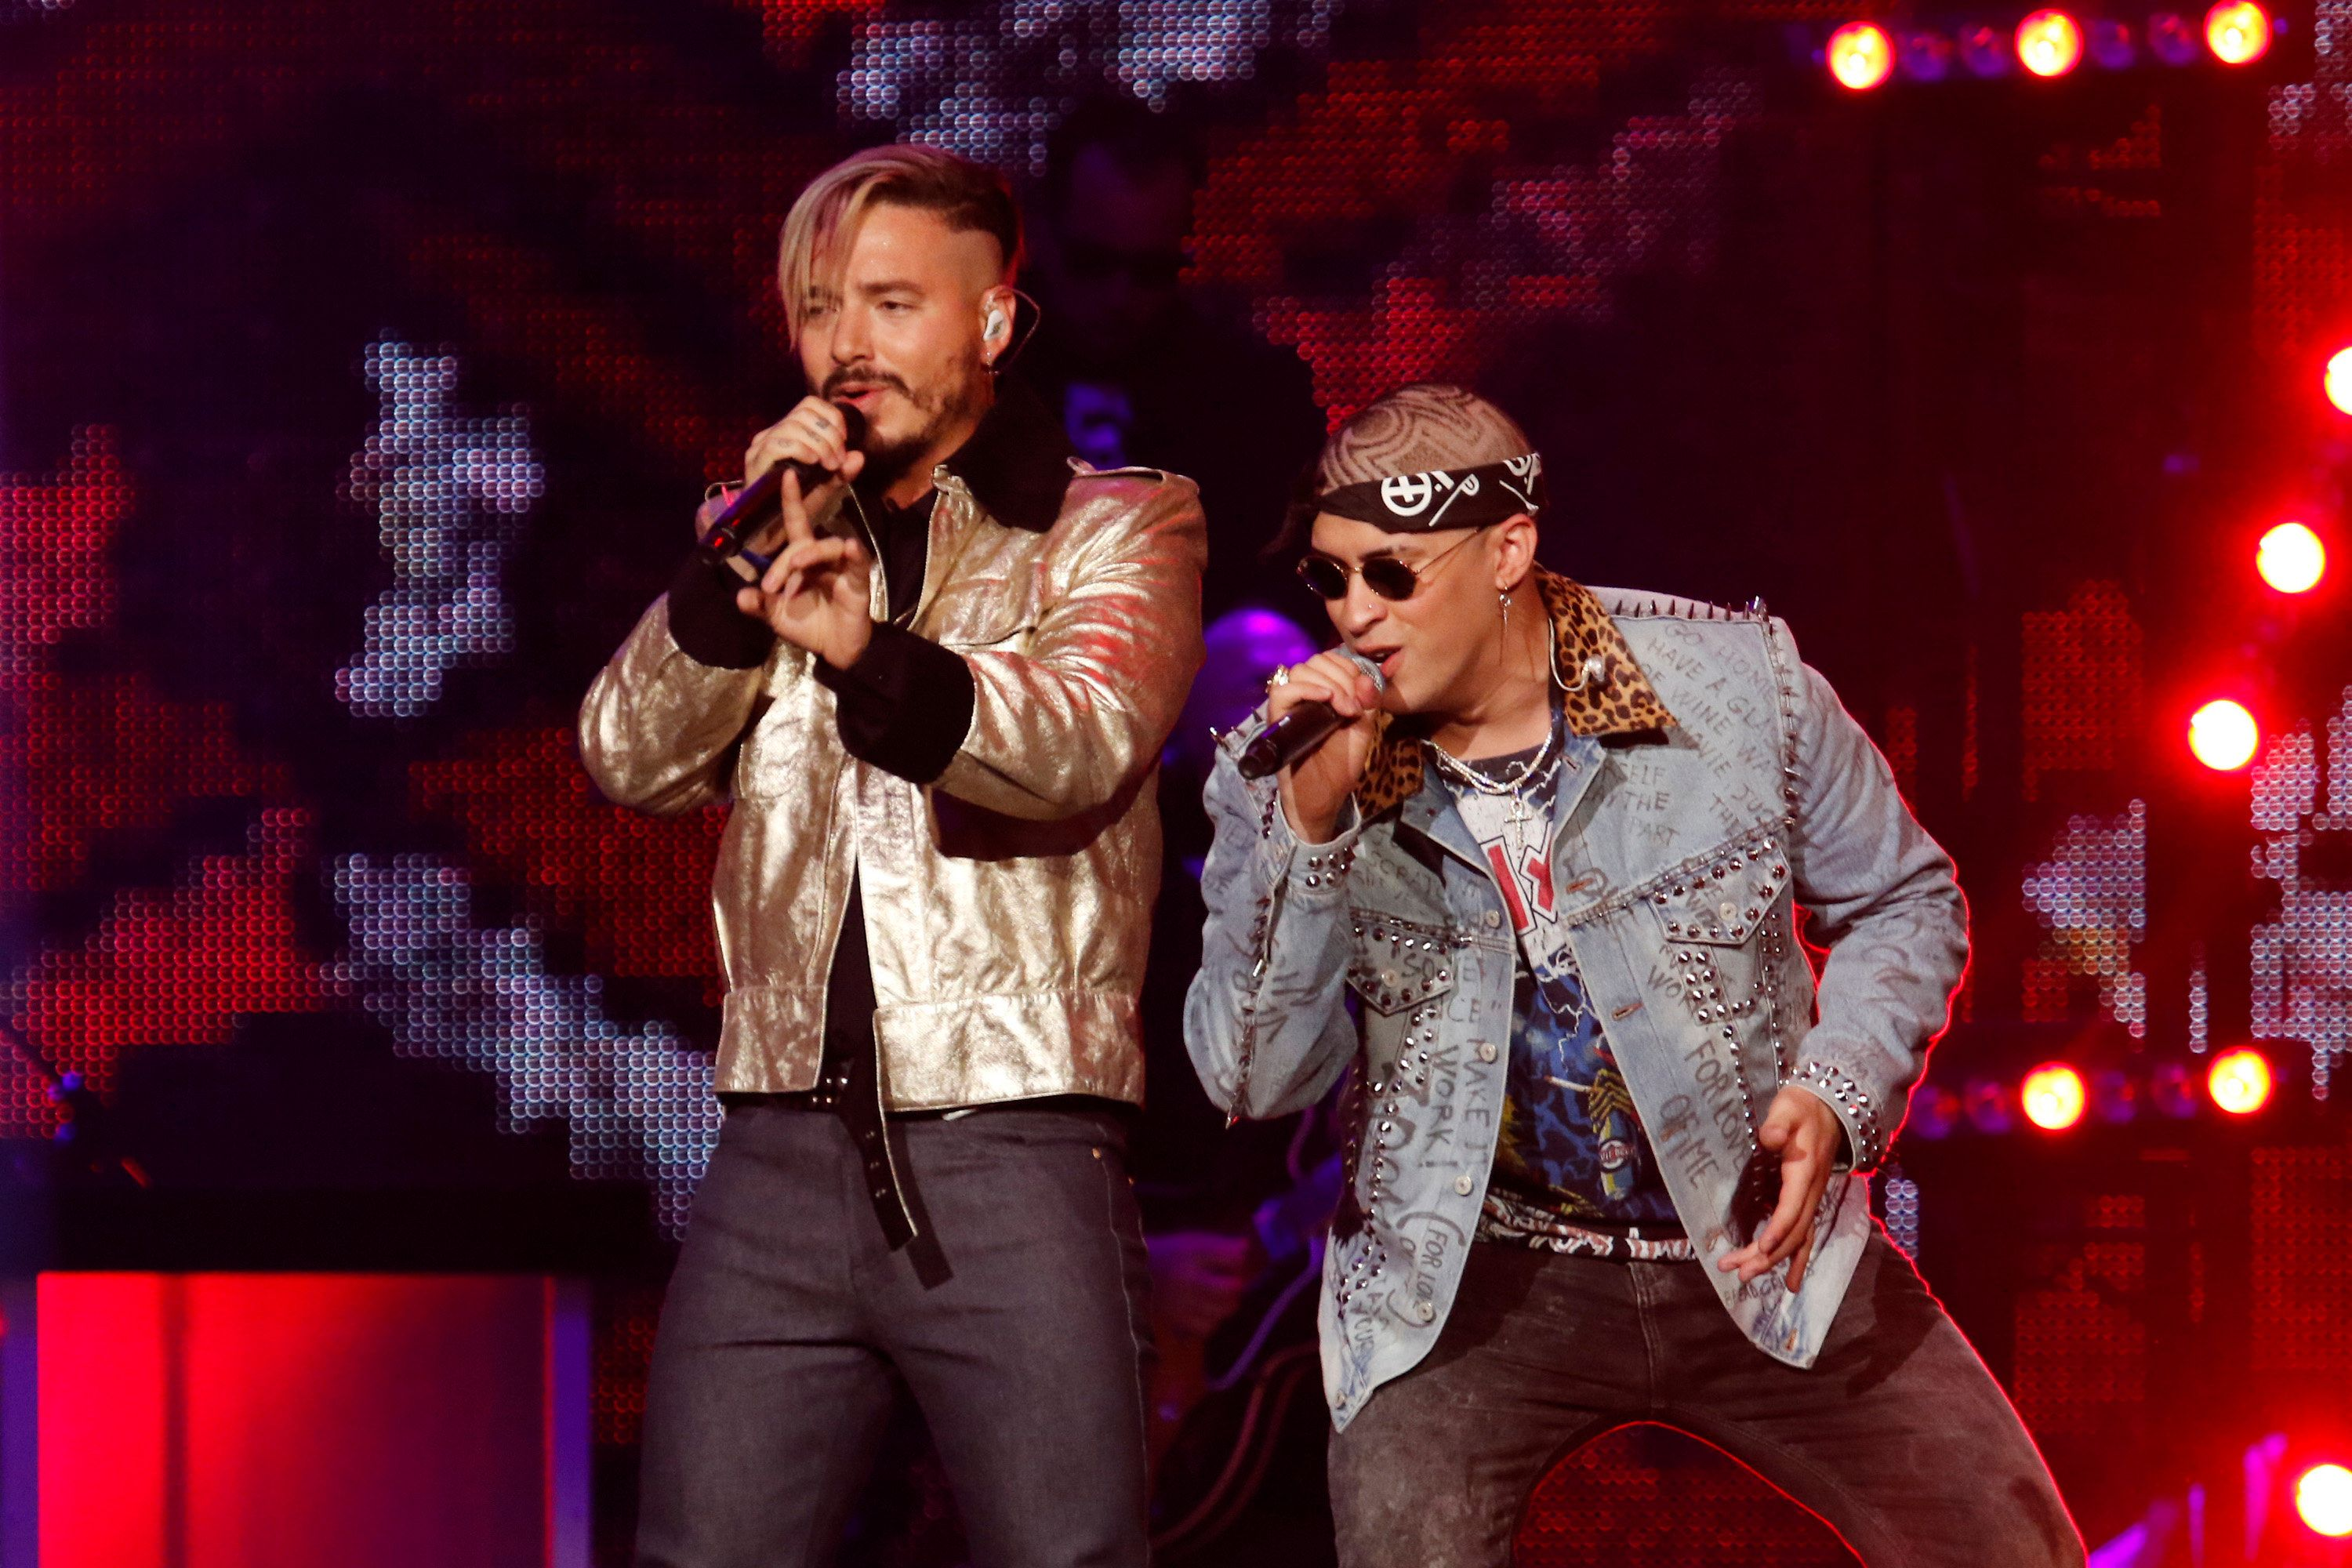 PREMIOS BILLBOARD DE LA MÚSICA LATINA 2017 -- Pictured: J Balvin and Bad Bunny perform on stage at the Watsco Center in the University of Miami, Coral Gables, Florida on April 27, 2017 -- (Photo by: John Parra/Telemundo/NBCU Photo Bank via Getty Images)